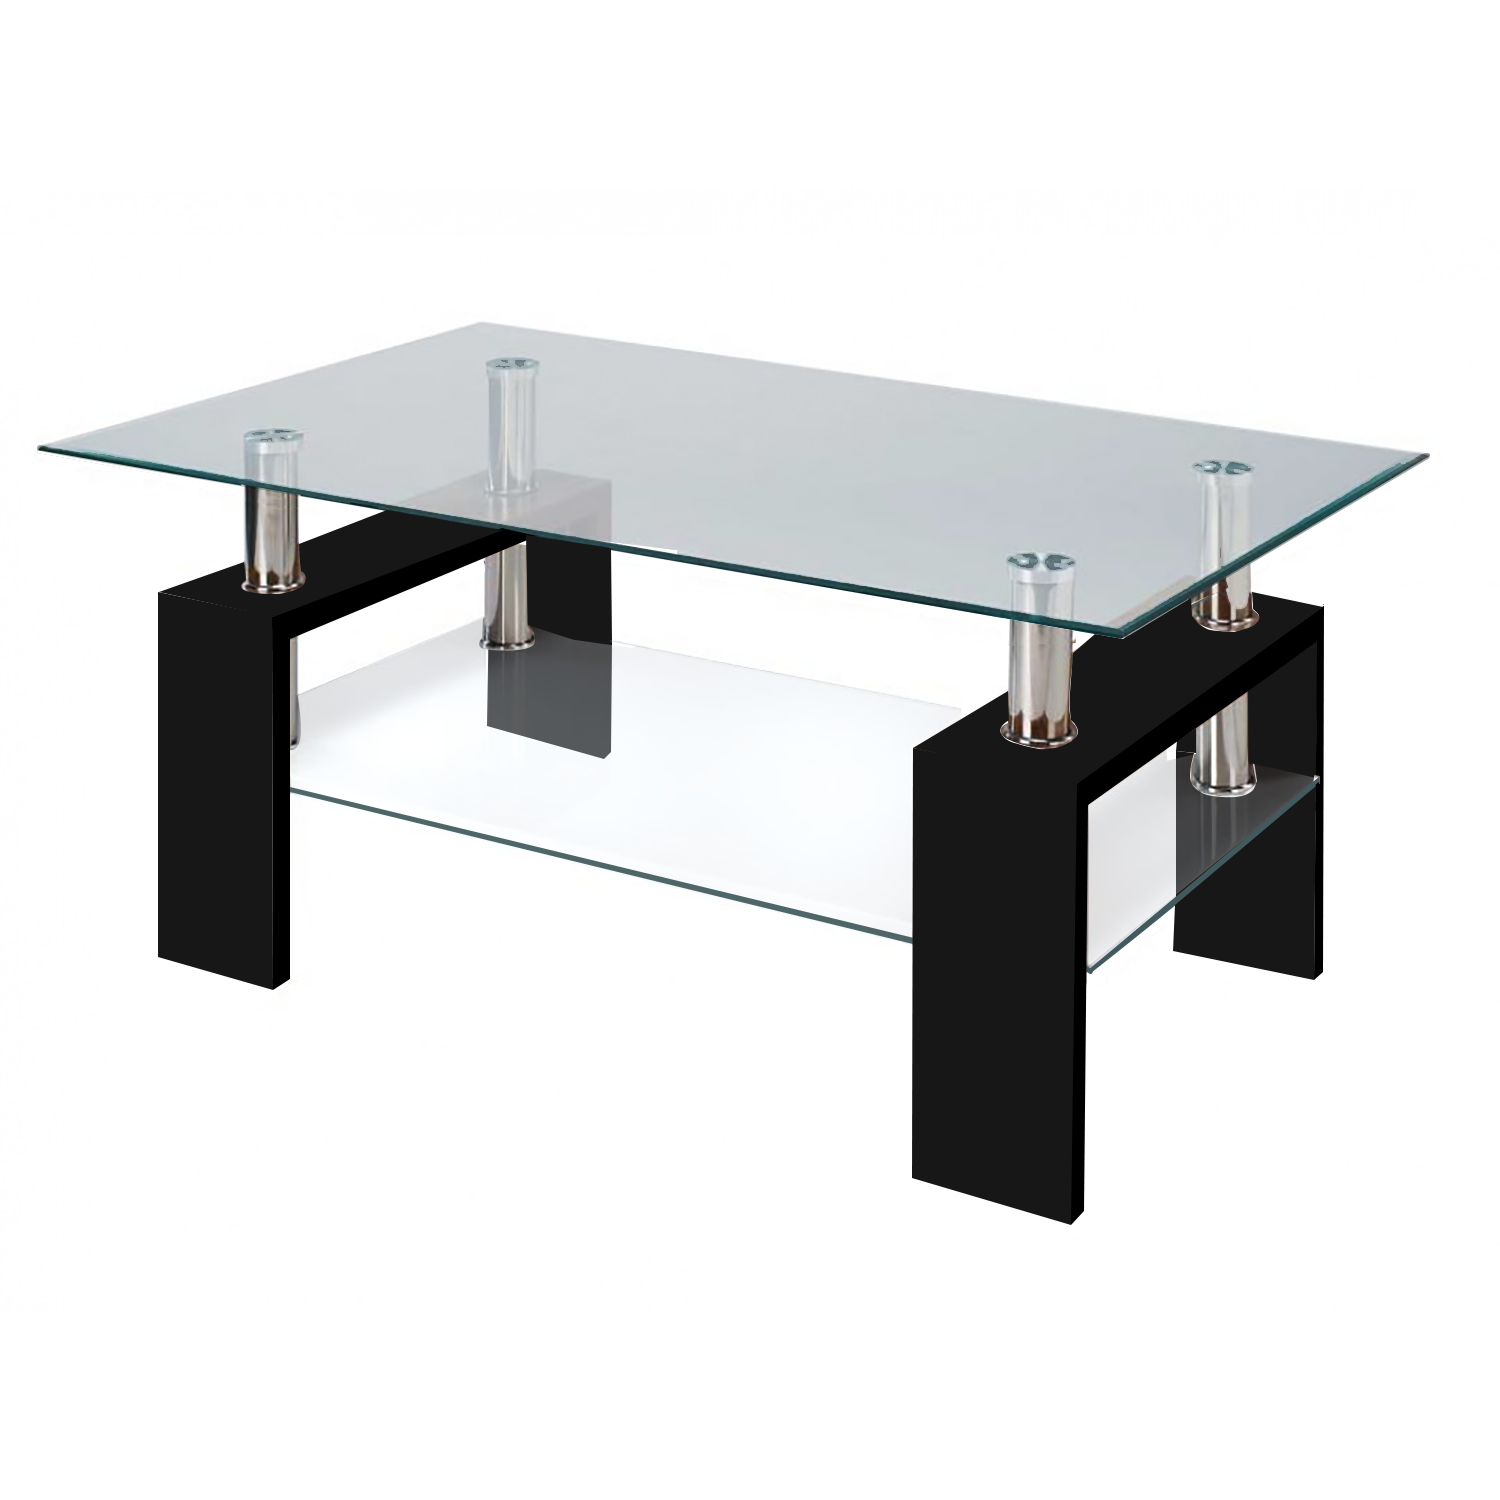 glass table modern glass black coffee table with shelf contemporary living room JWFAJML